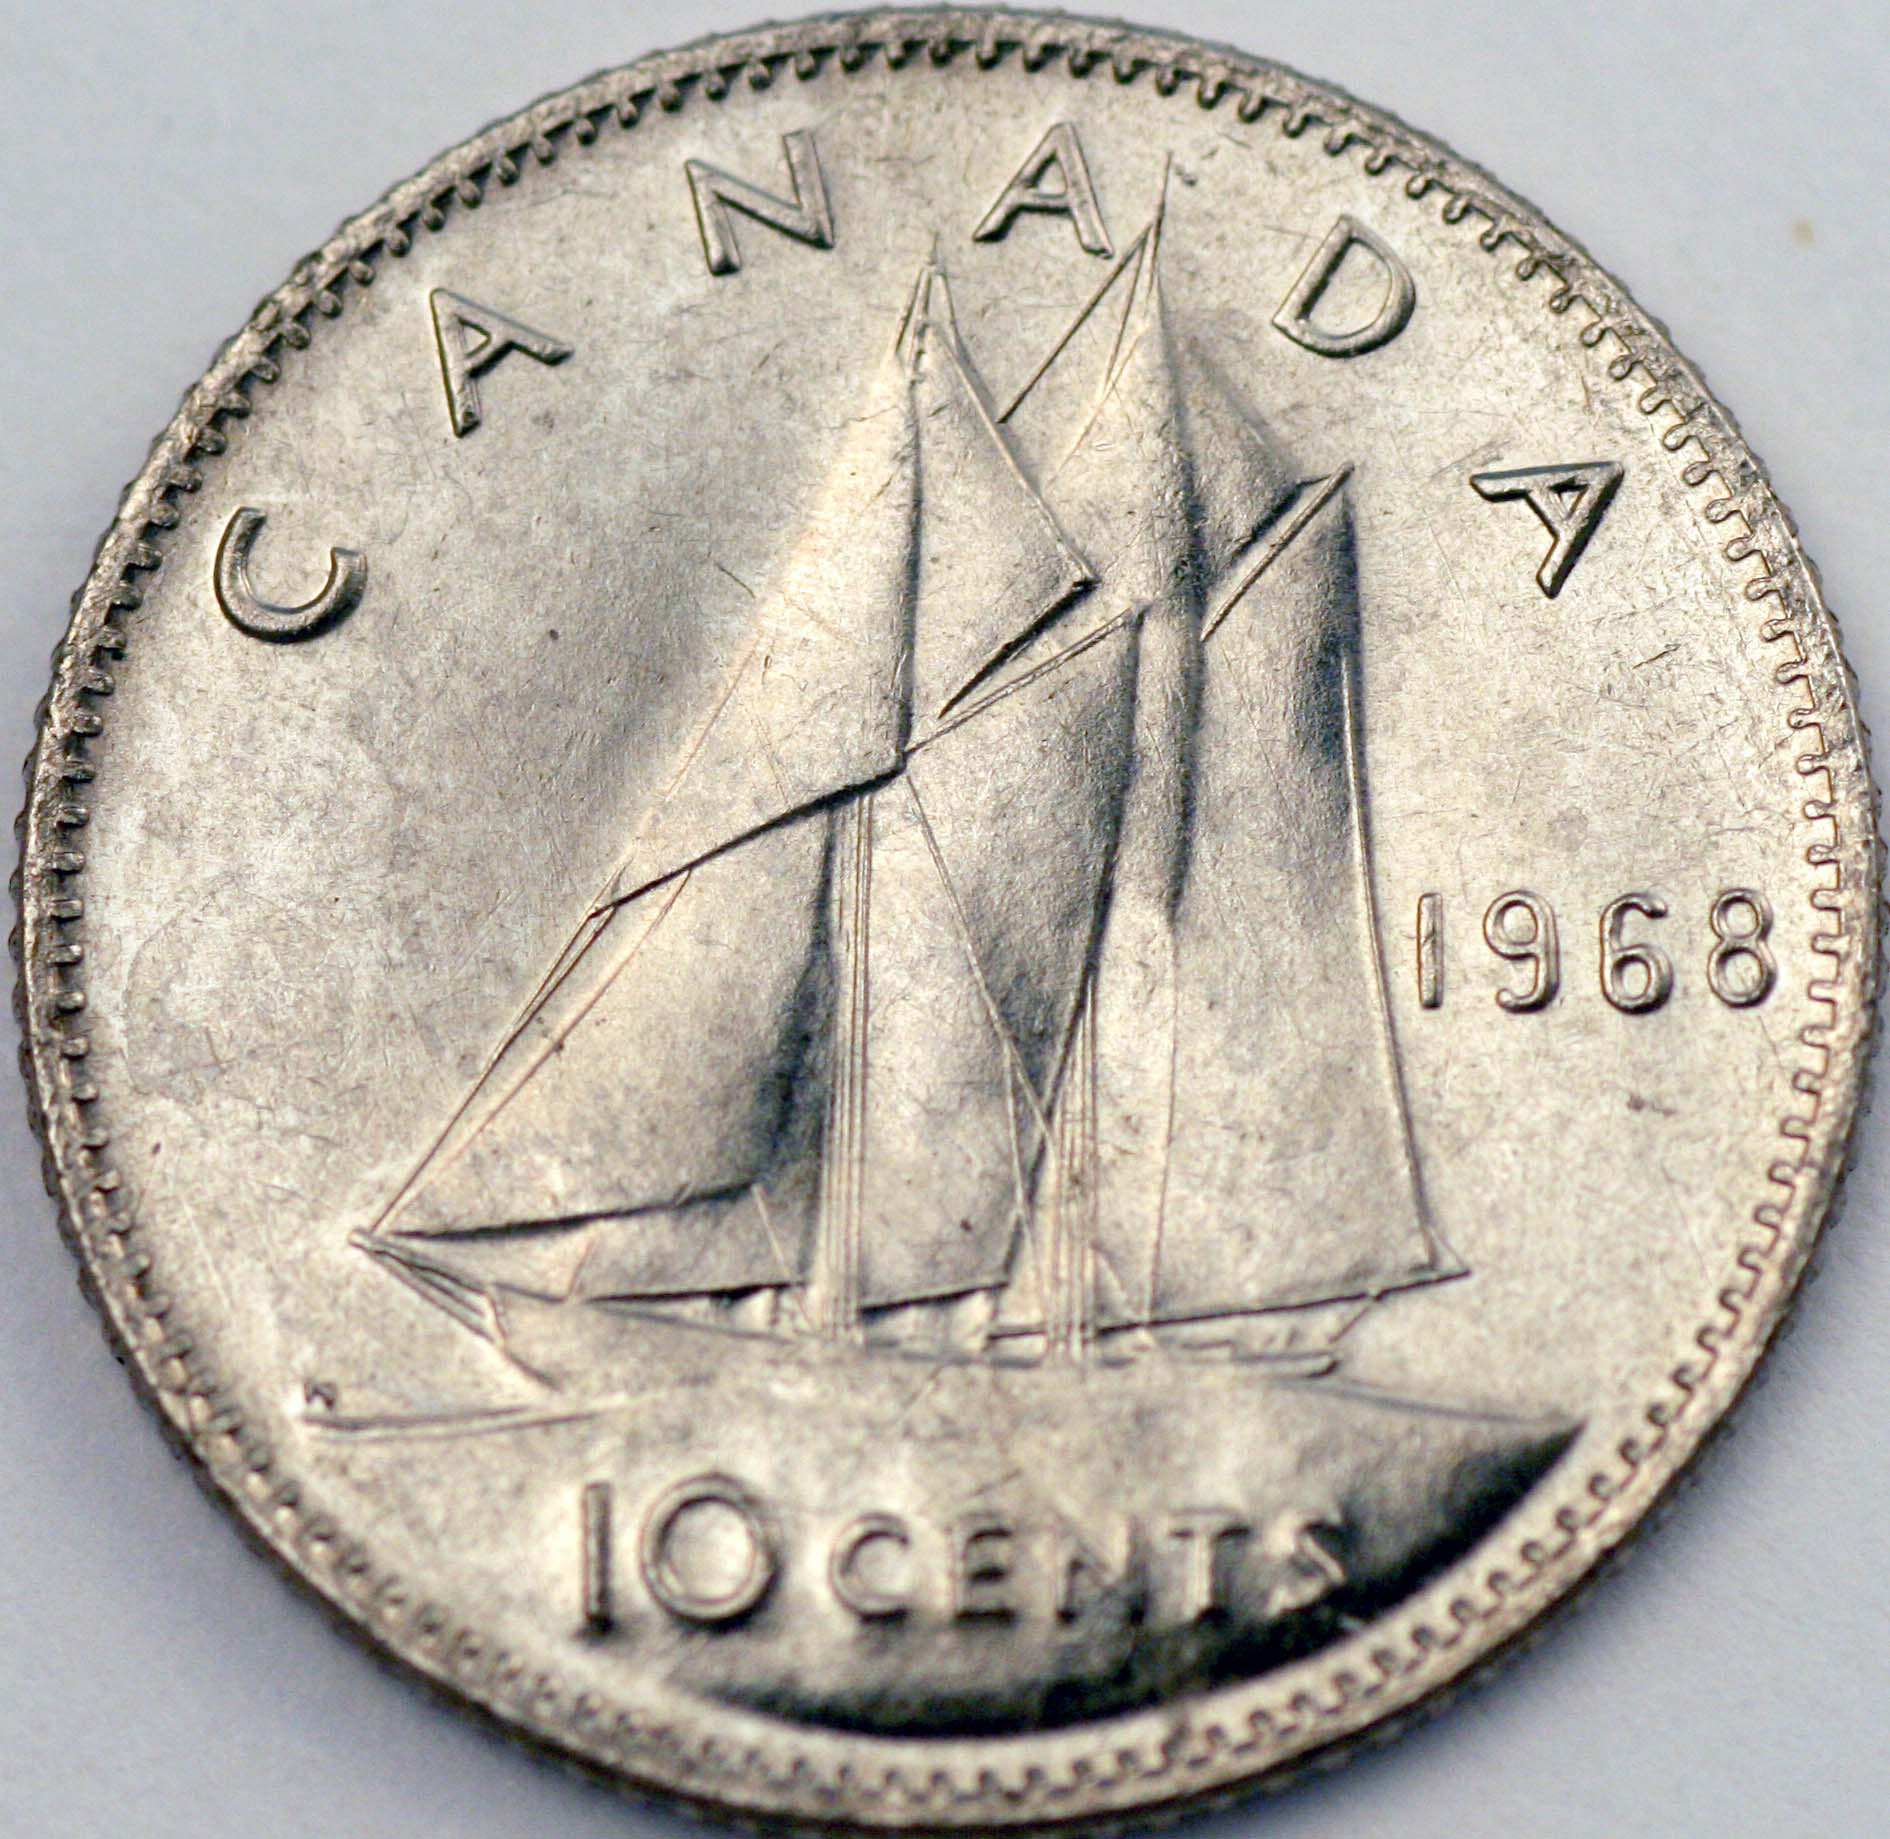 1969 Canadian Ten Cents Large Date Variety